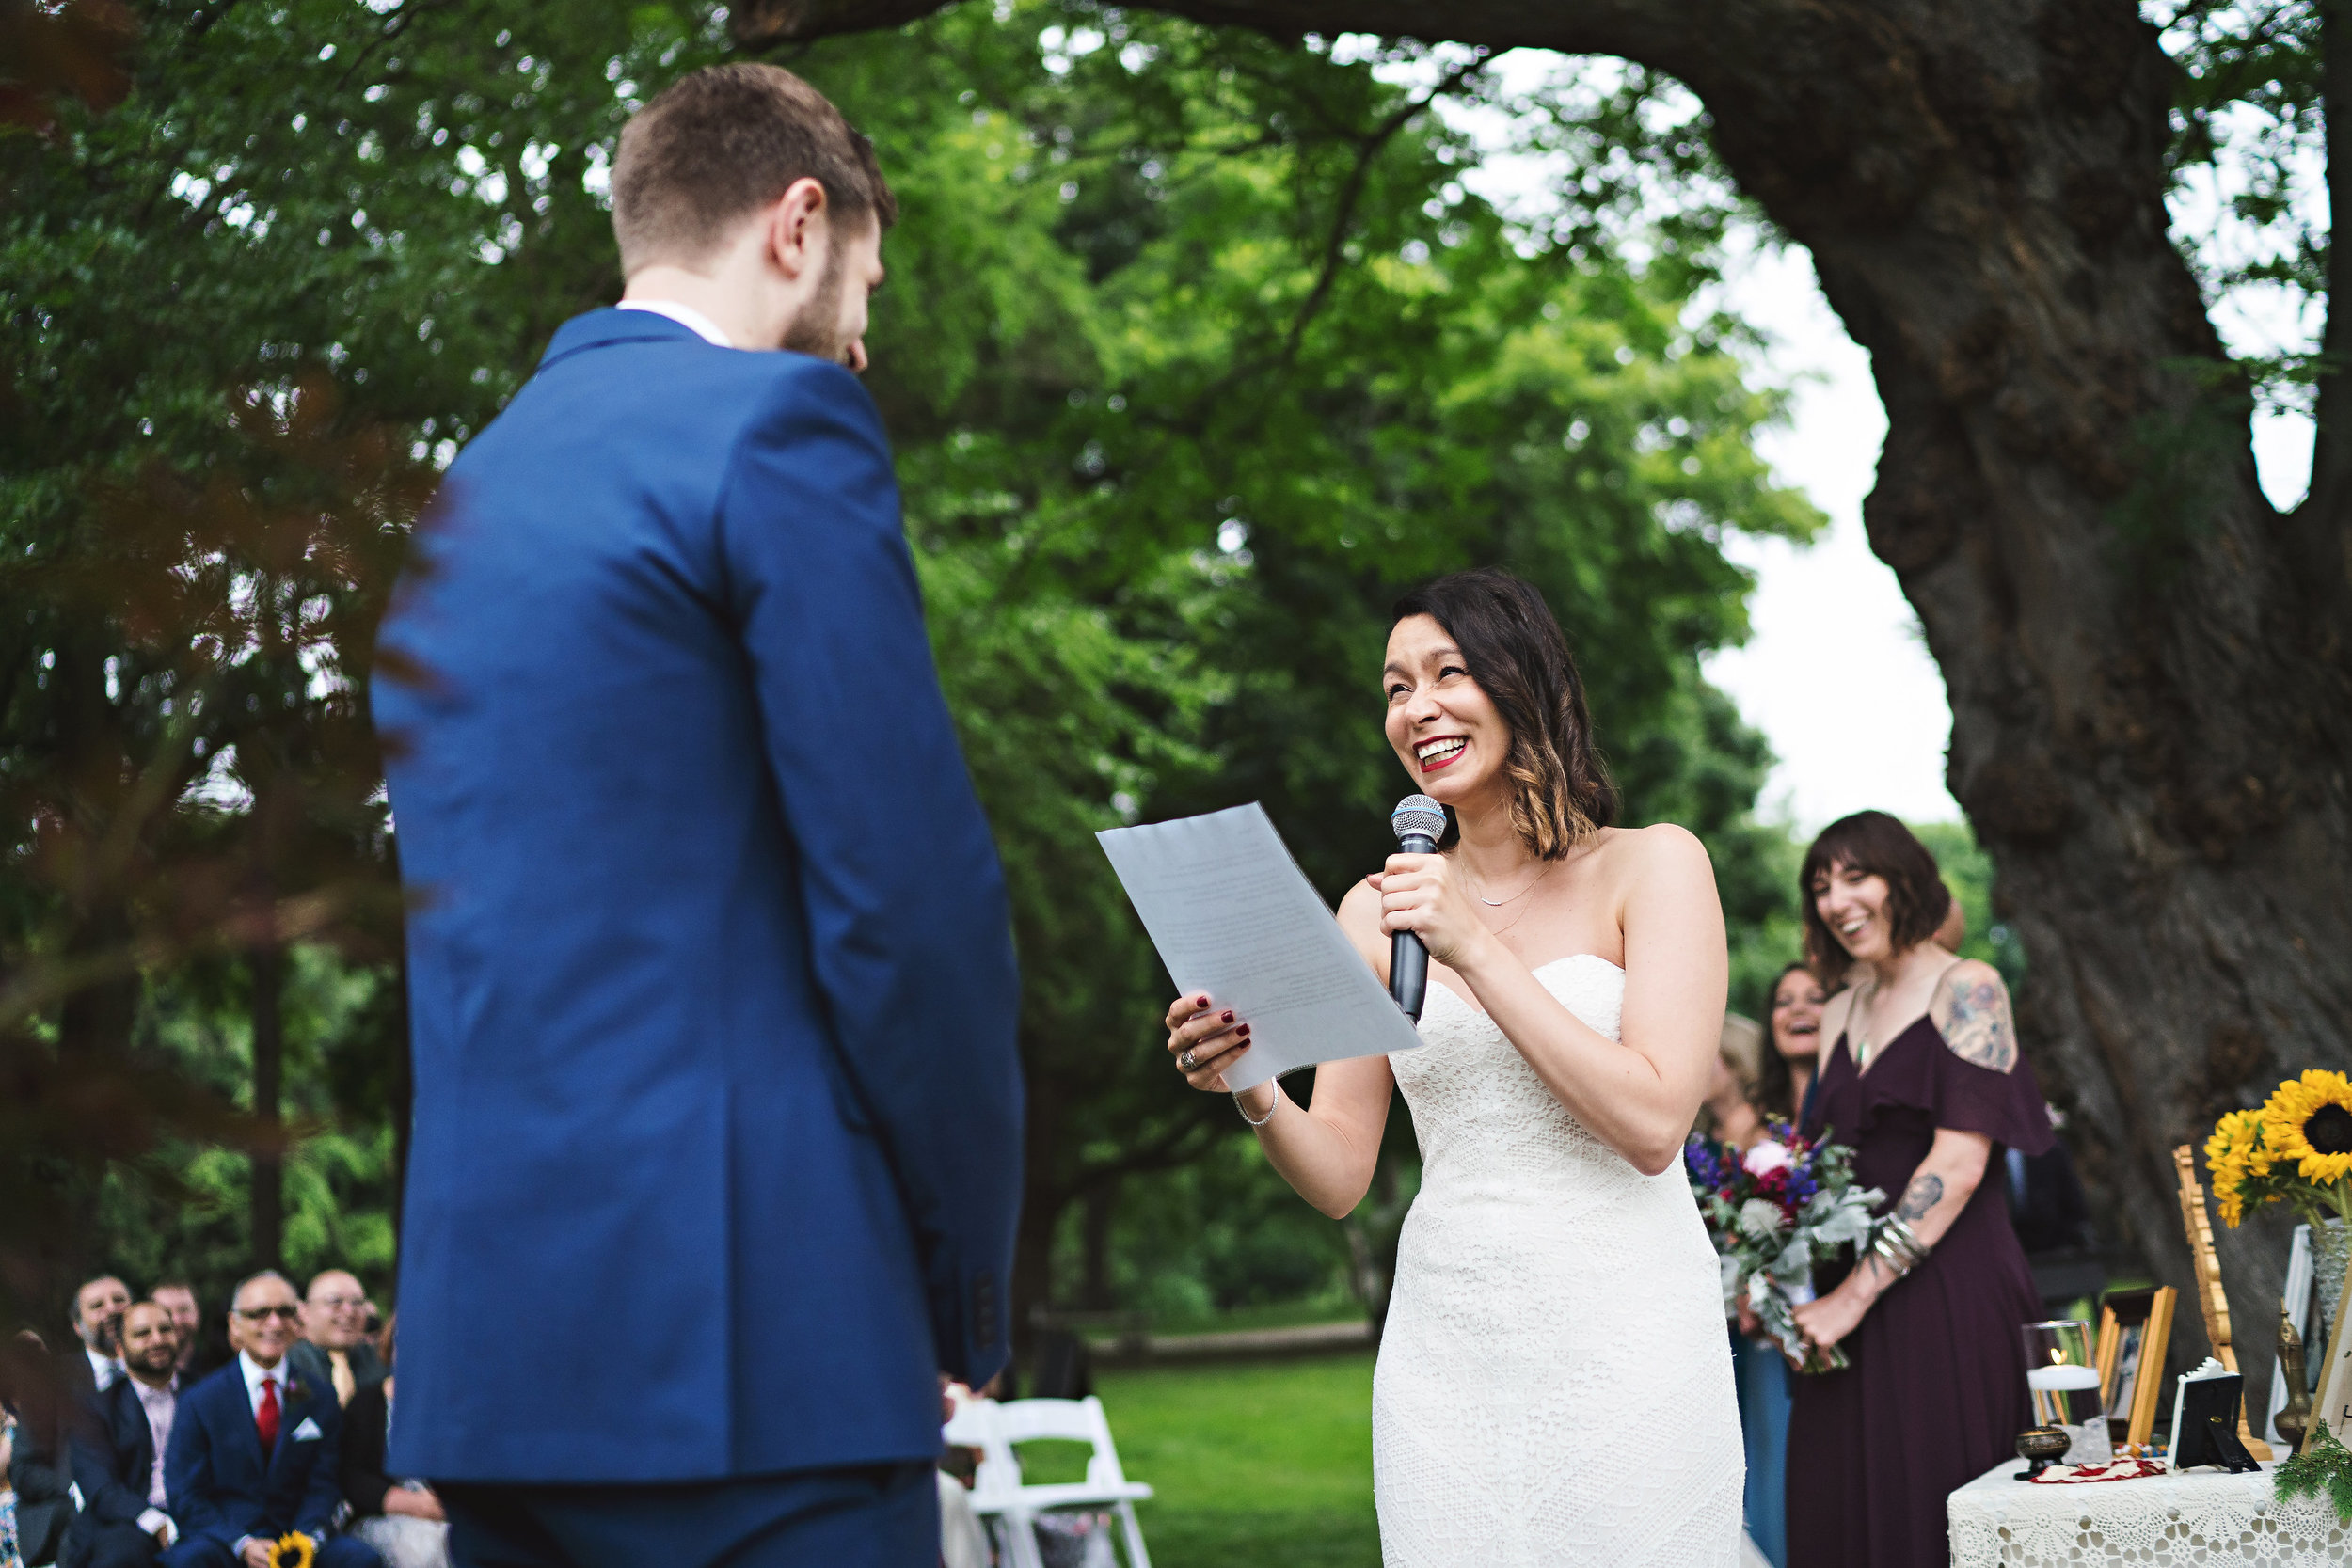 Taline & Will Ceremony Vows.jpg